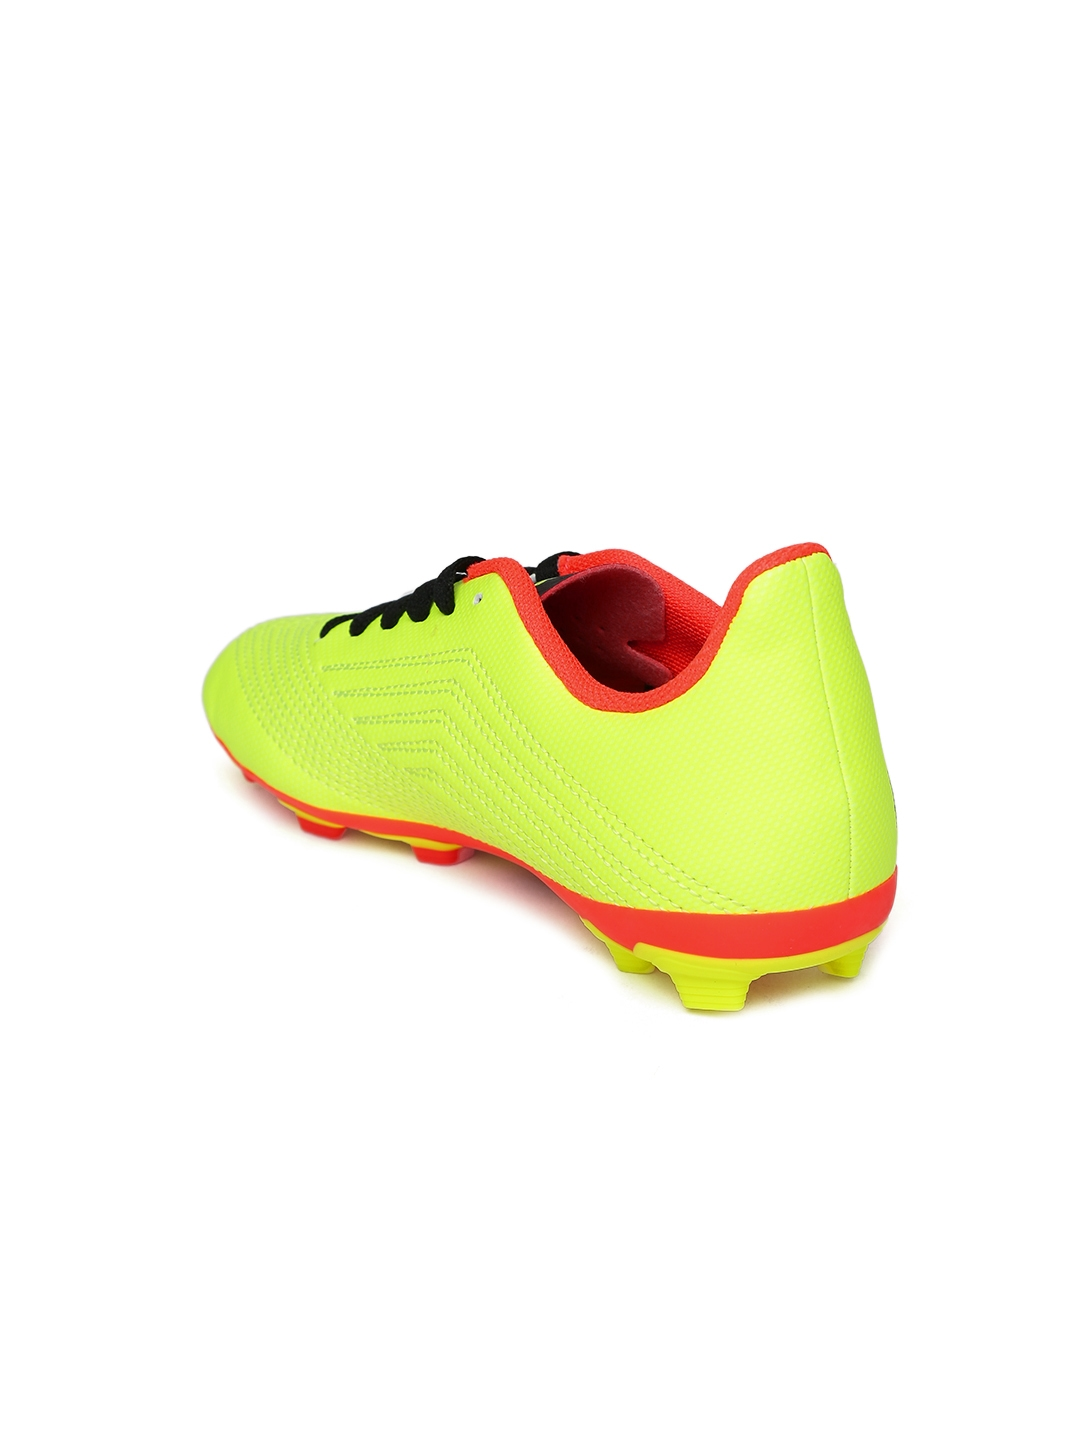 af9be549409d Buy ADIDAS Boys Neon Yellow Predator 18.4 FXG J Football Shoes ...